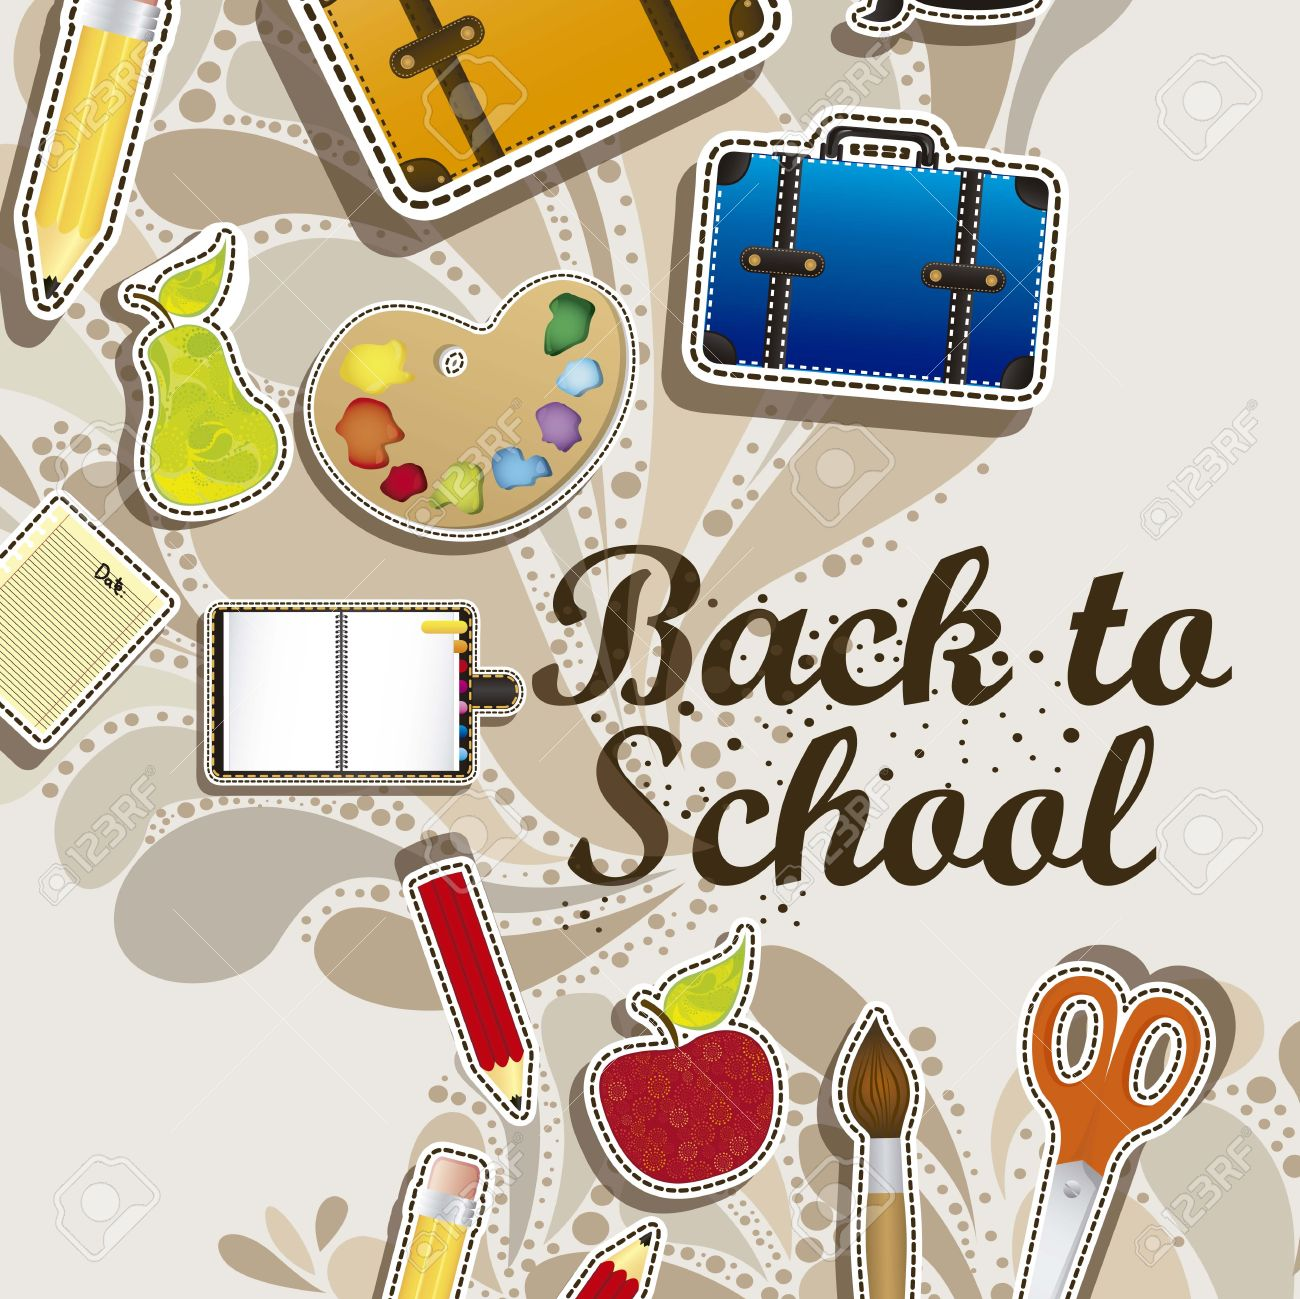 Illustration of back to school, school supplies, vector illustration Stock Vector - 18651563